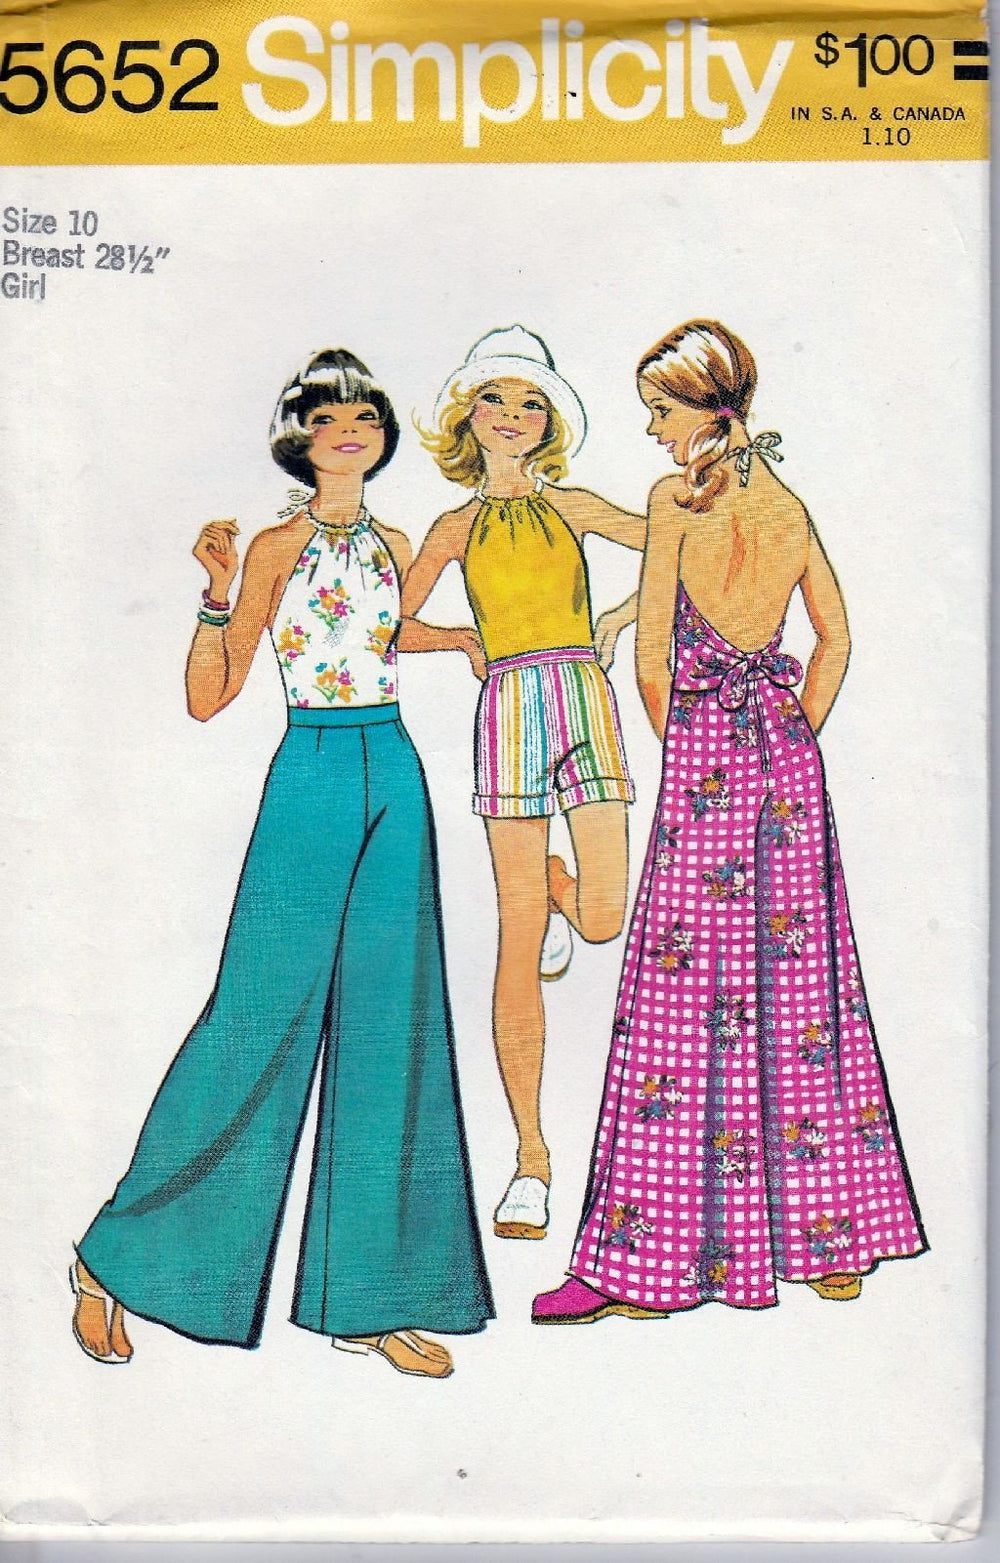 Simplicity 5652 Vintage 1970's Sewing Pattern Girls Pants Halter Top Shorts - VintageStitching - Vintage Sewing Patterns